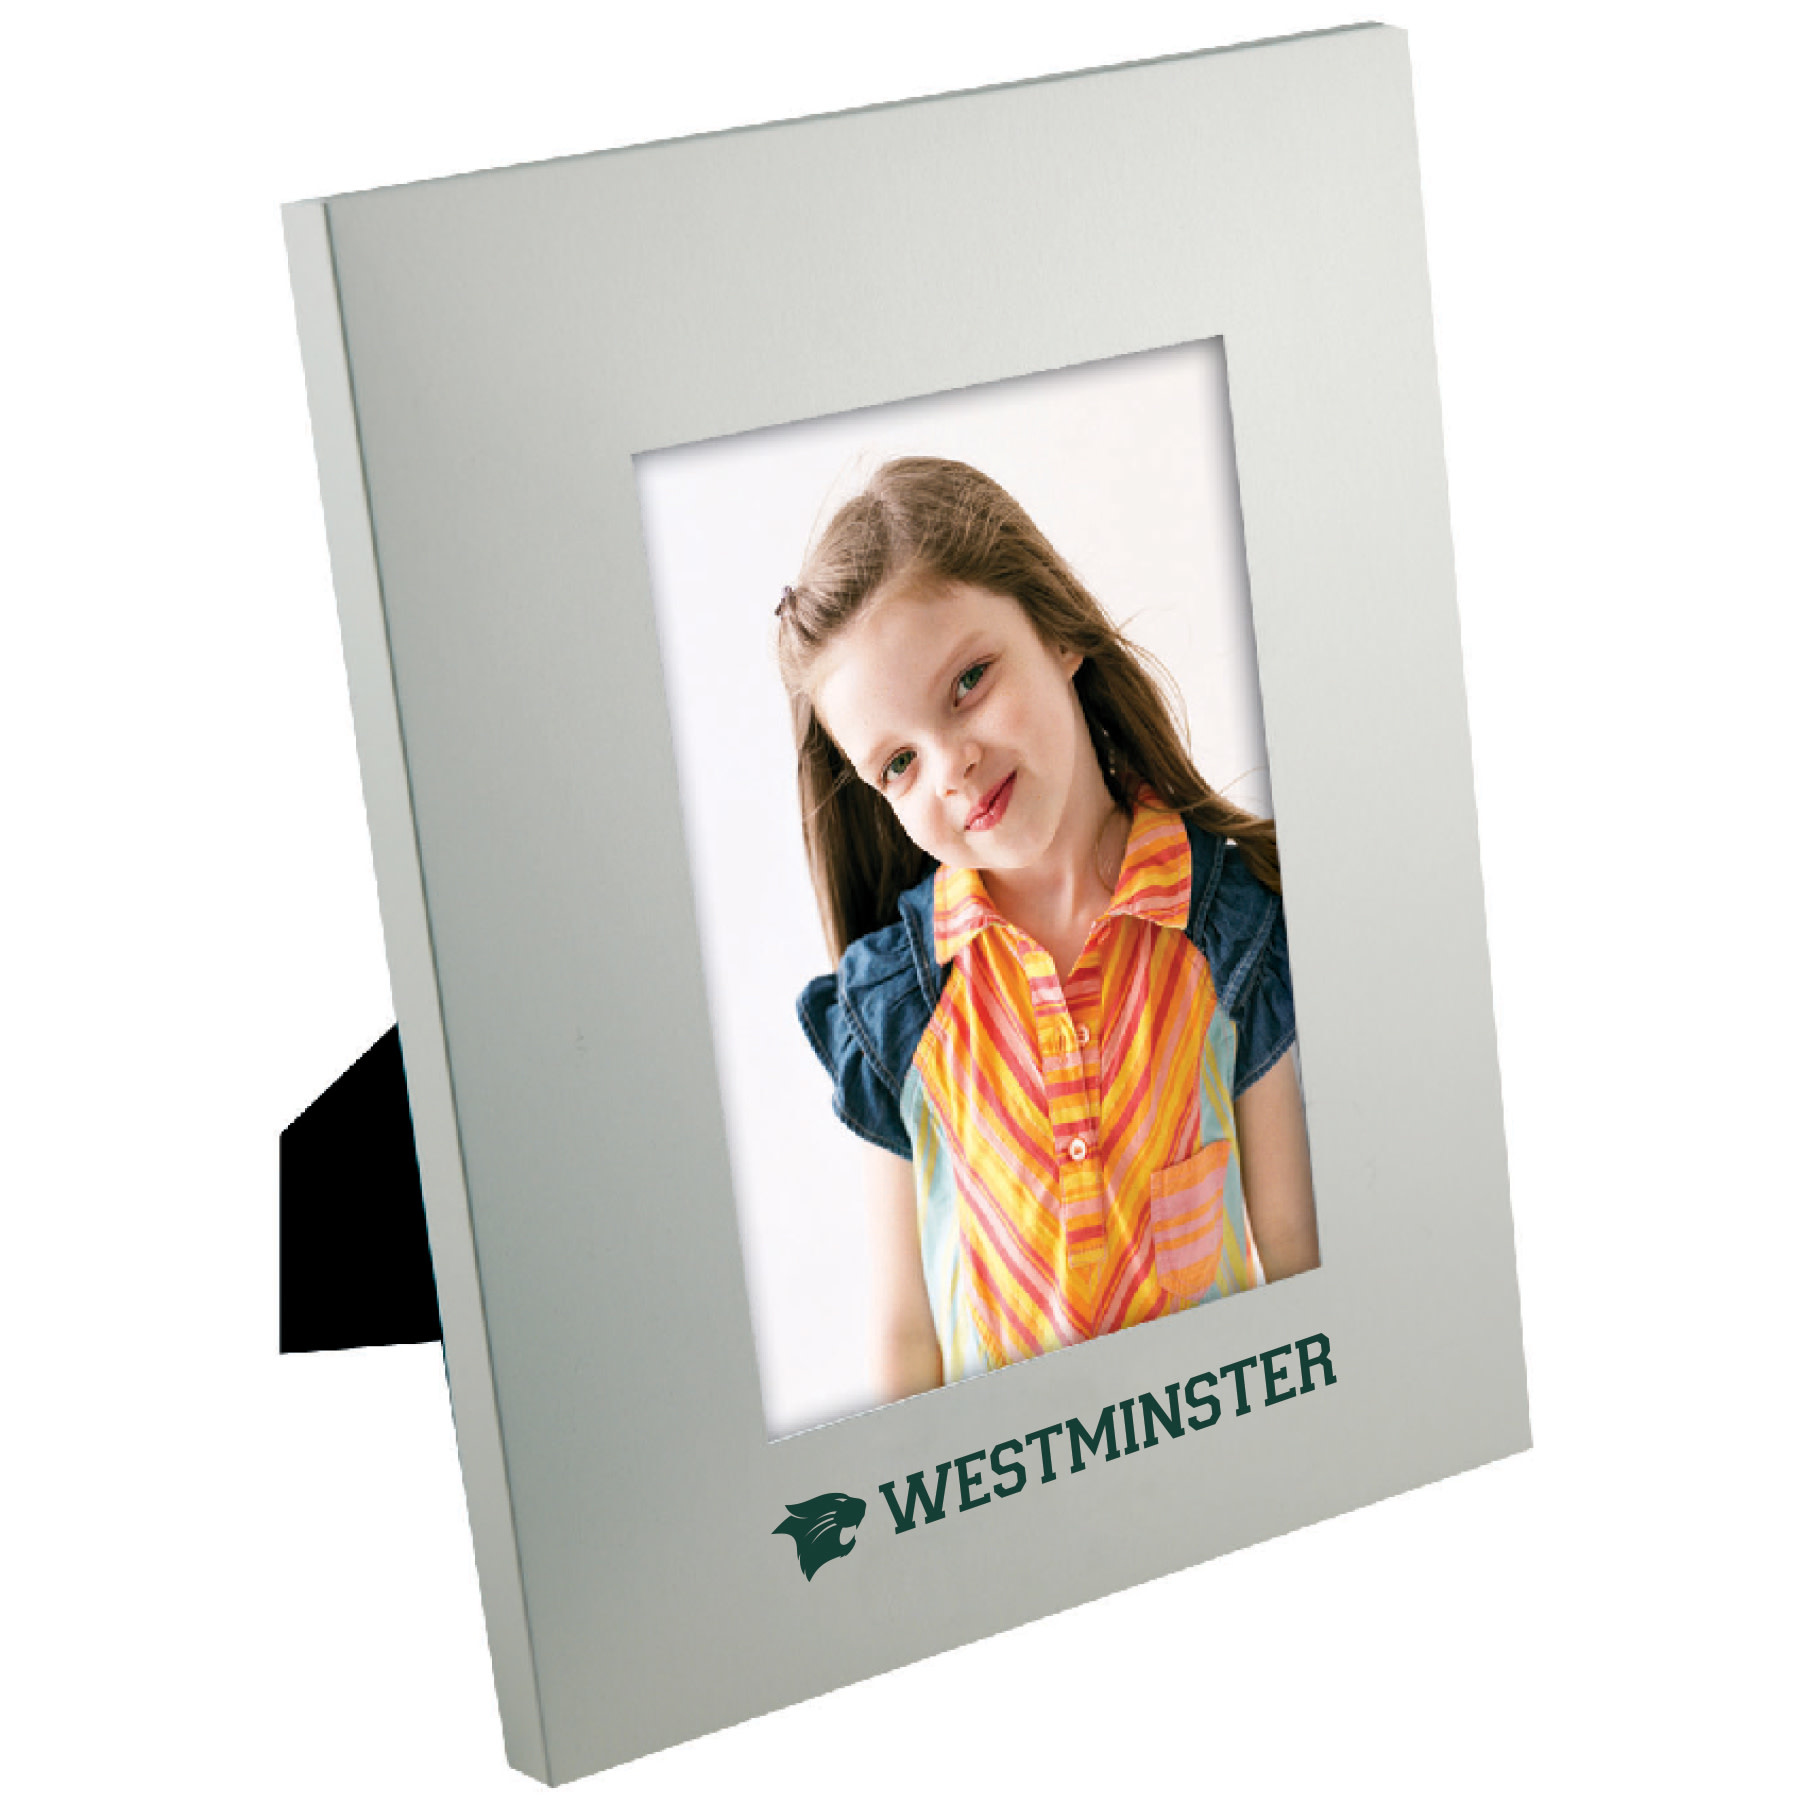 Frame: 5x7 Portrait Matte Brushed Silver w/Green WM and Wildcat